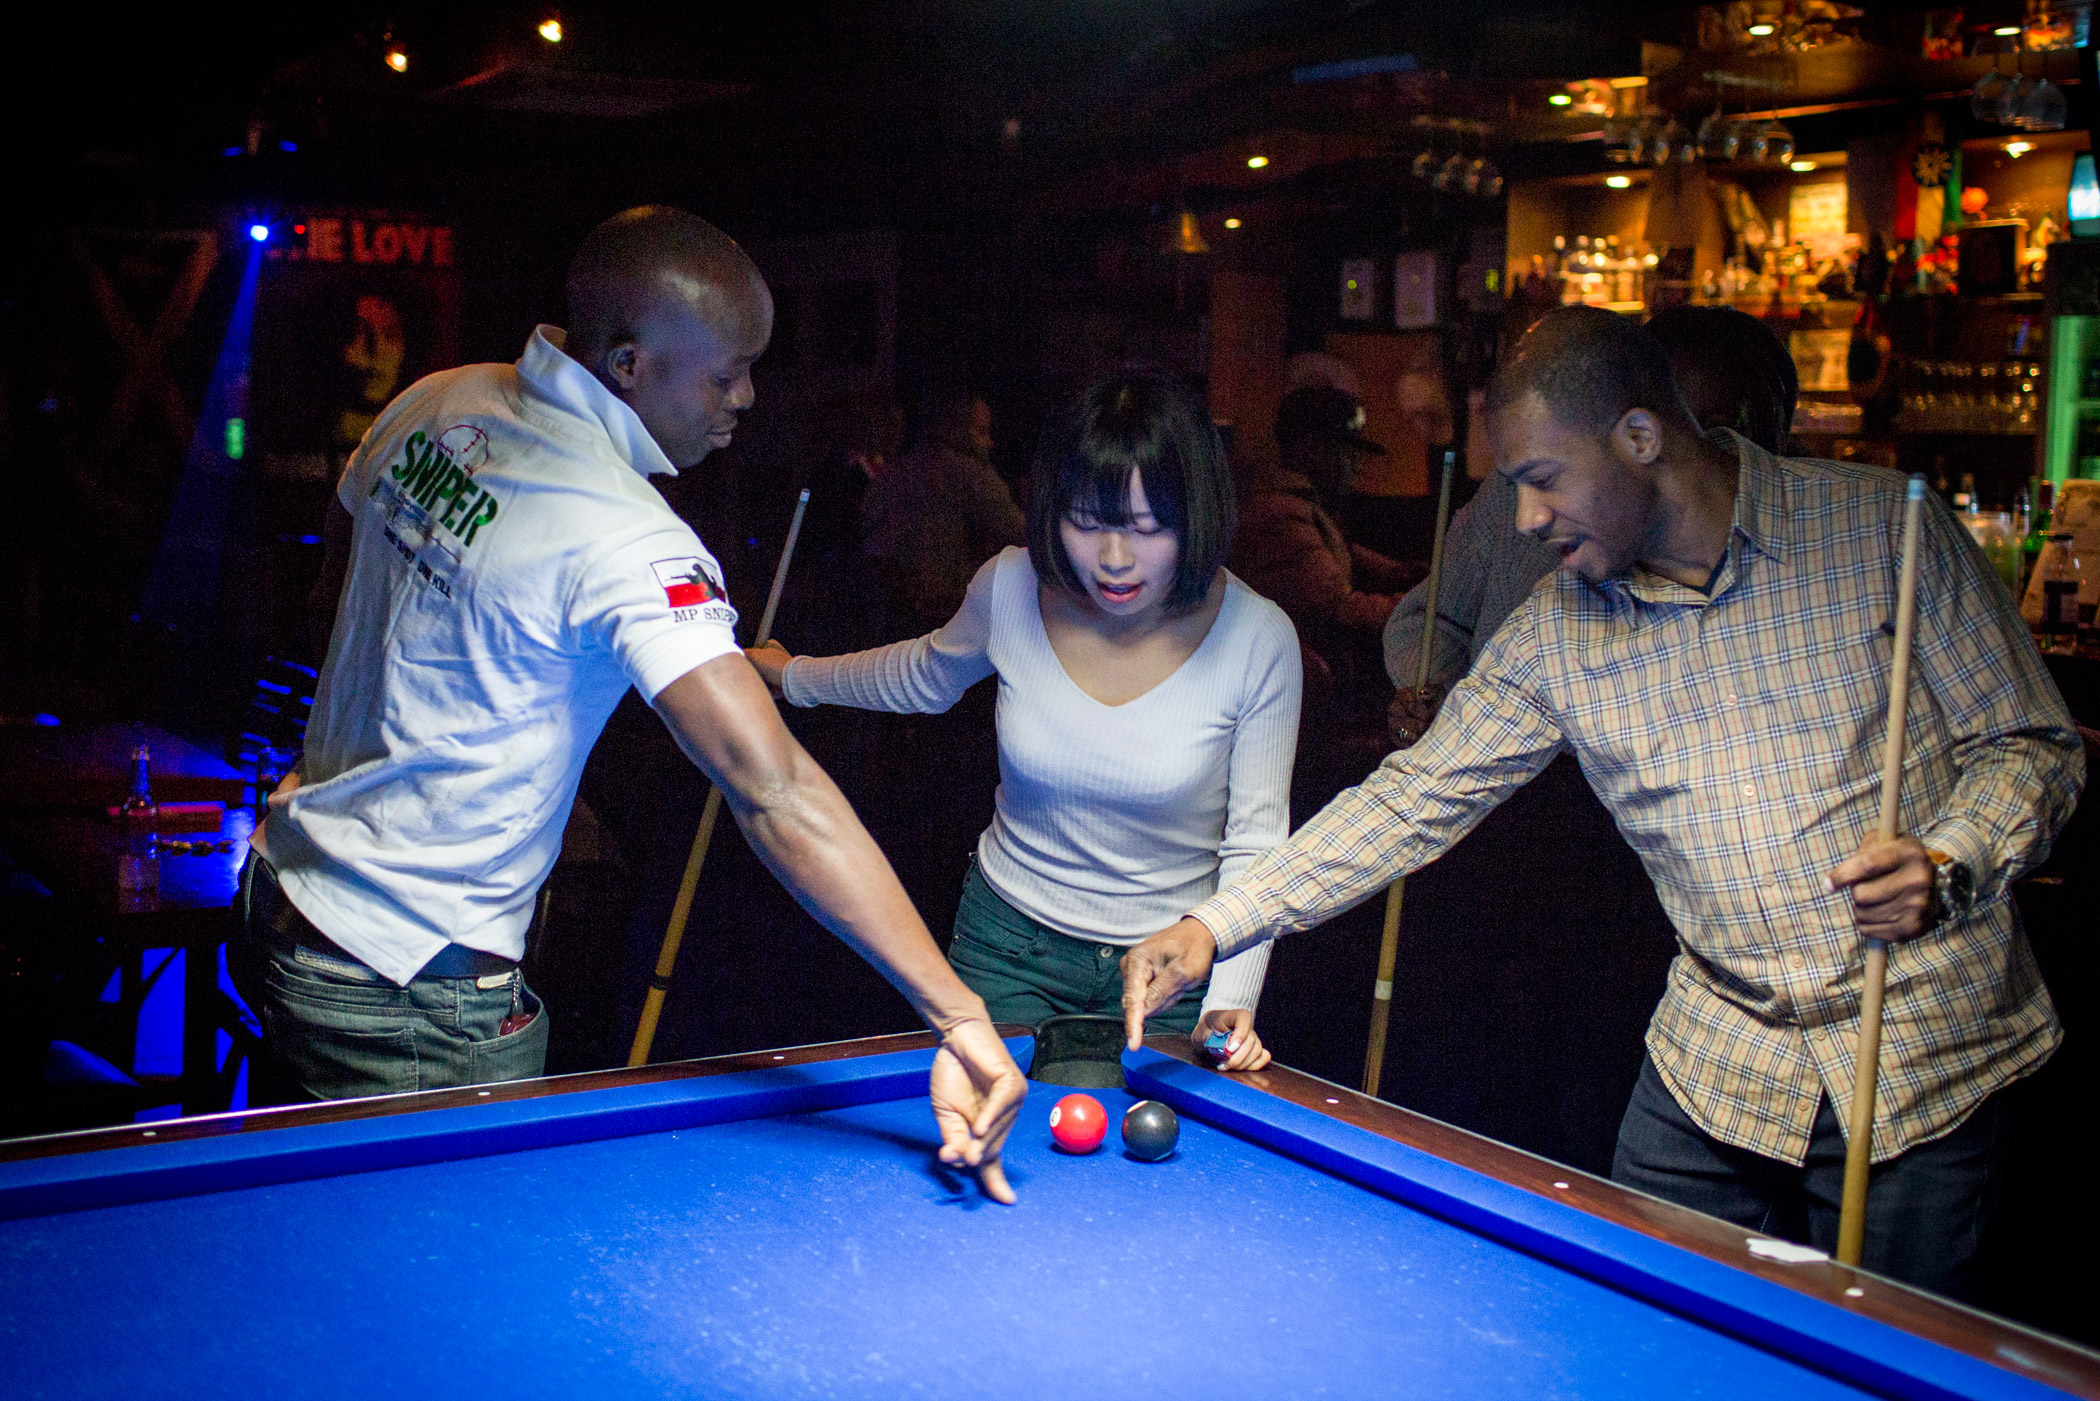 Kyoung-ok plays pool with Christian King of Liberia, left, and Jerry Alexander of Canada, right, at Club Zion, a Jamaican bar, on March 19 in Itaewon, Seoul, South Korea. Kyoung-ok loves to visit Itaewon, which is a foreigner-heavy neighborhood, to meet people from different places and sample foreign food.